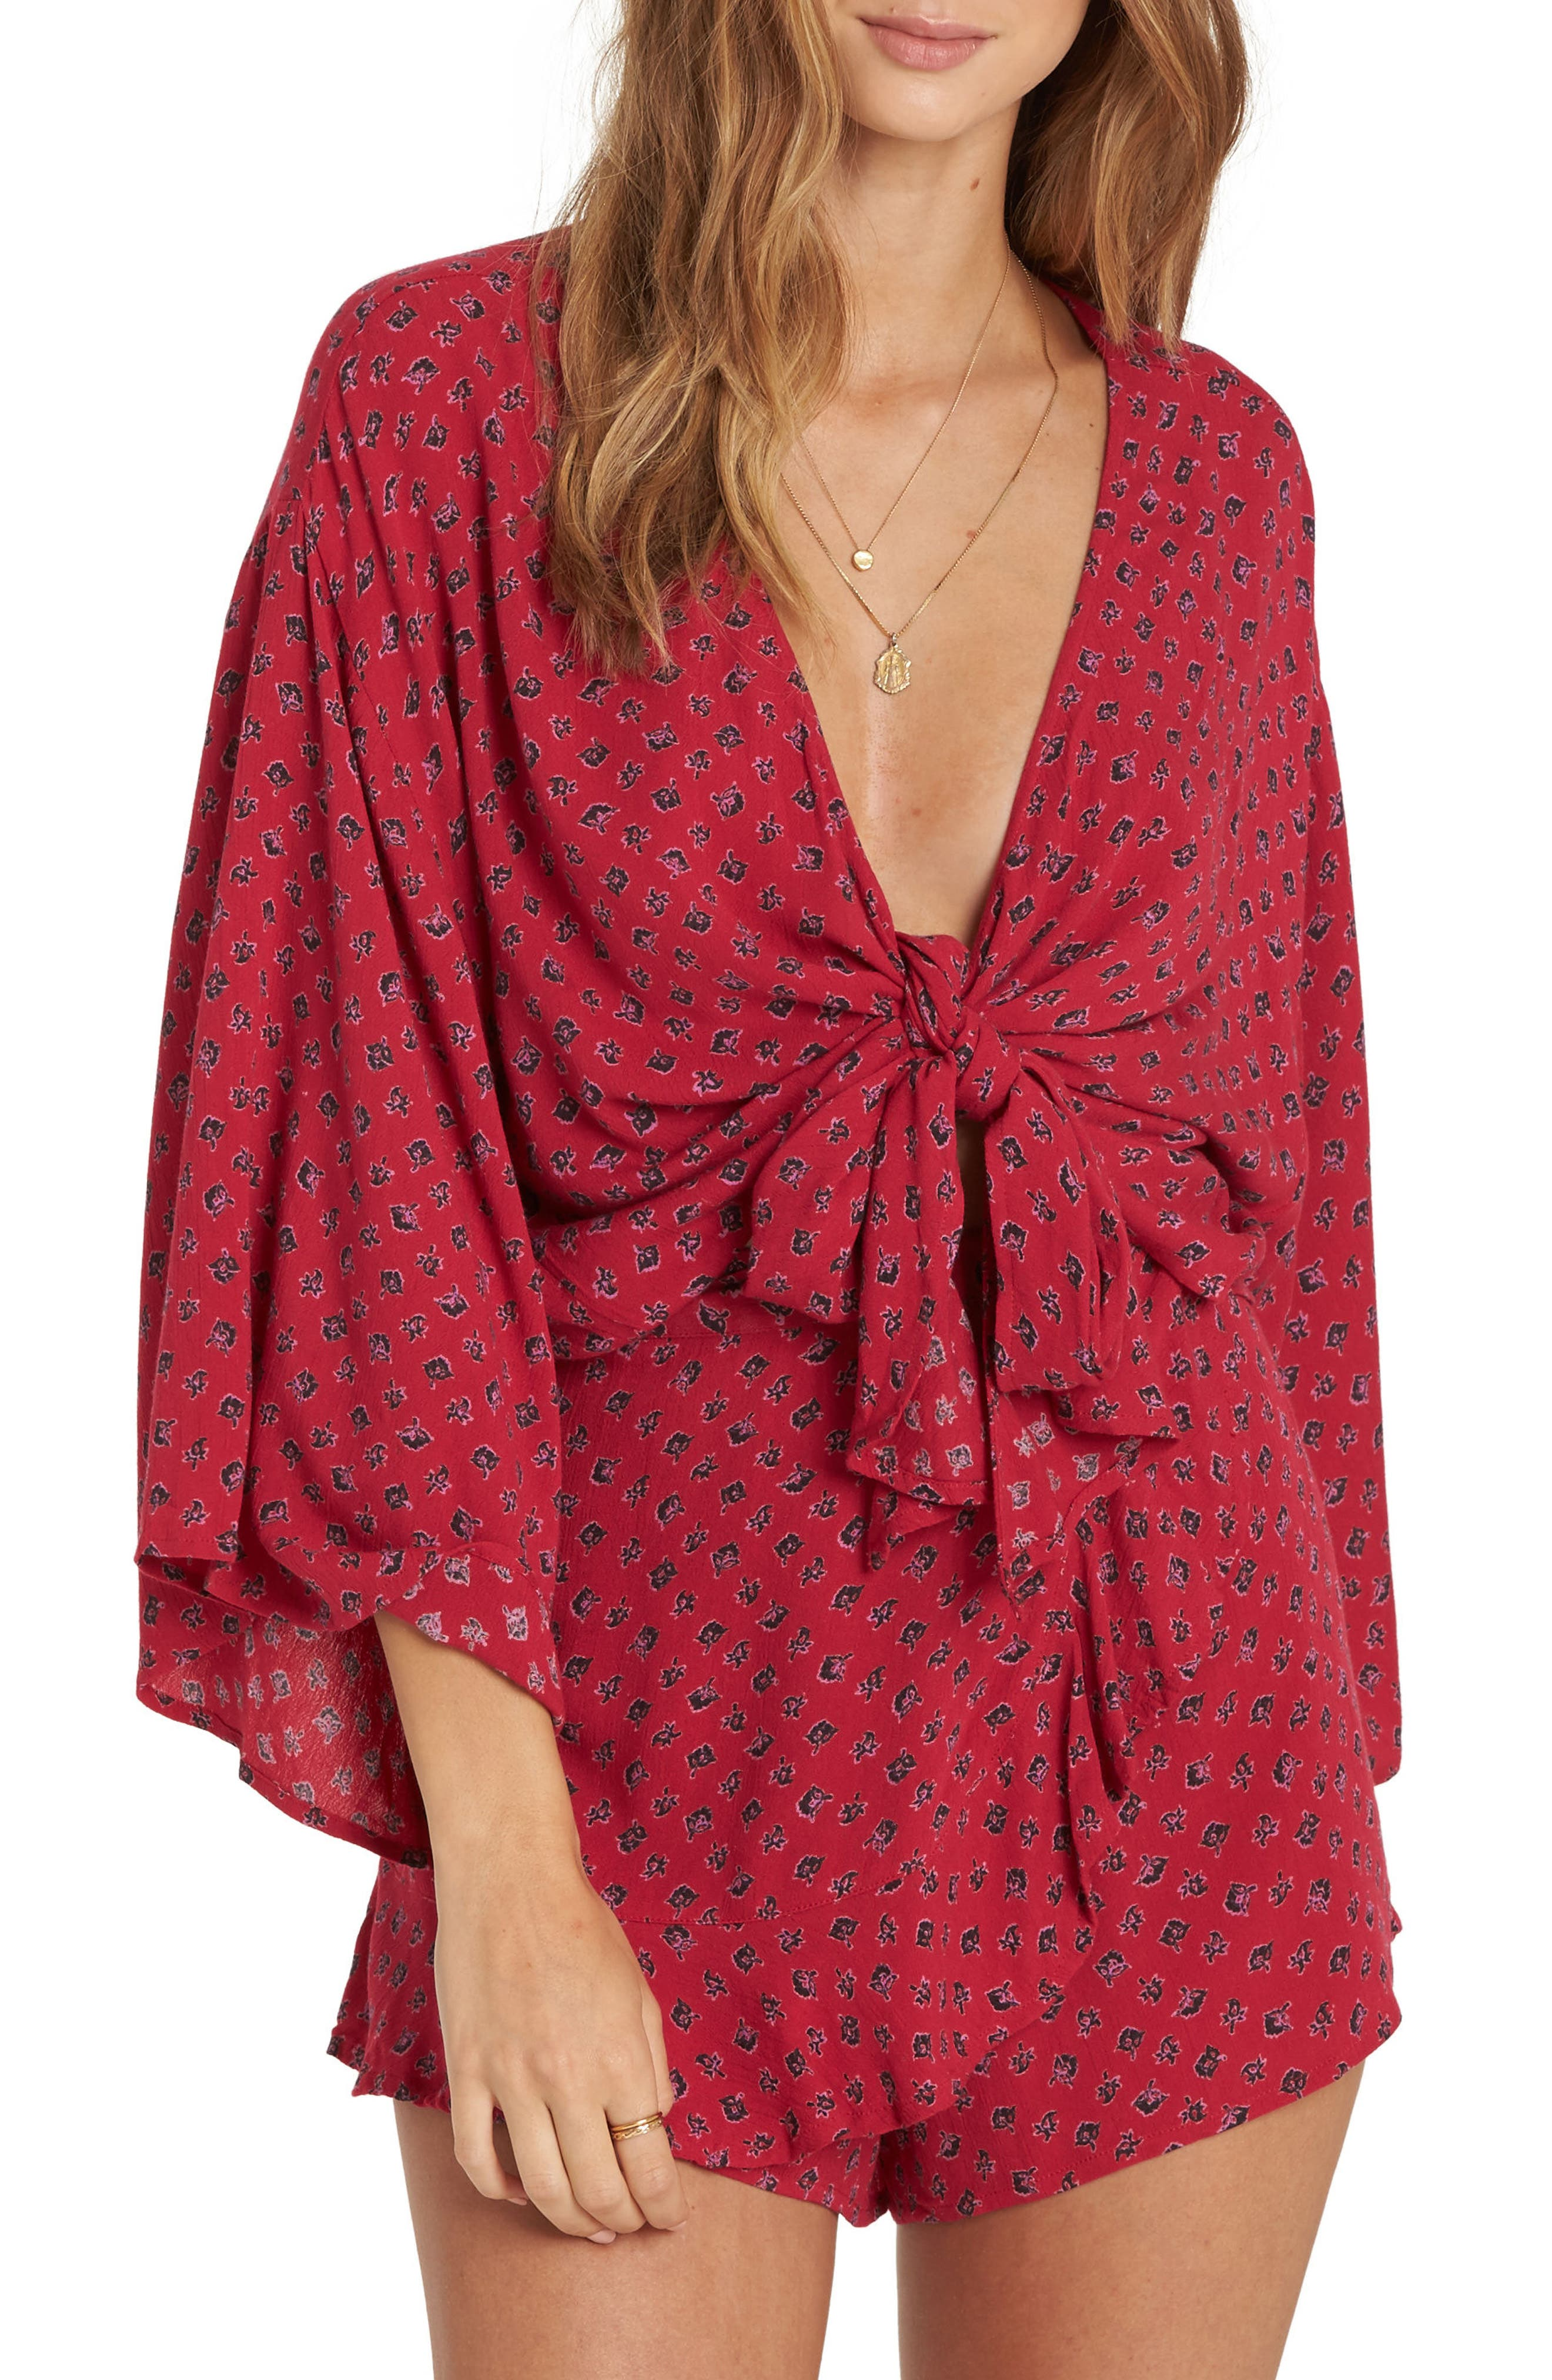 Knot Yours Top by Billabong